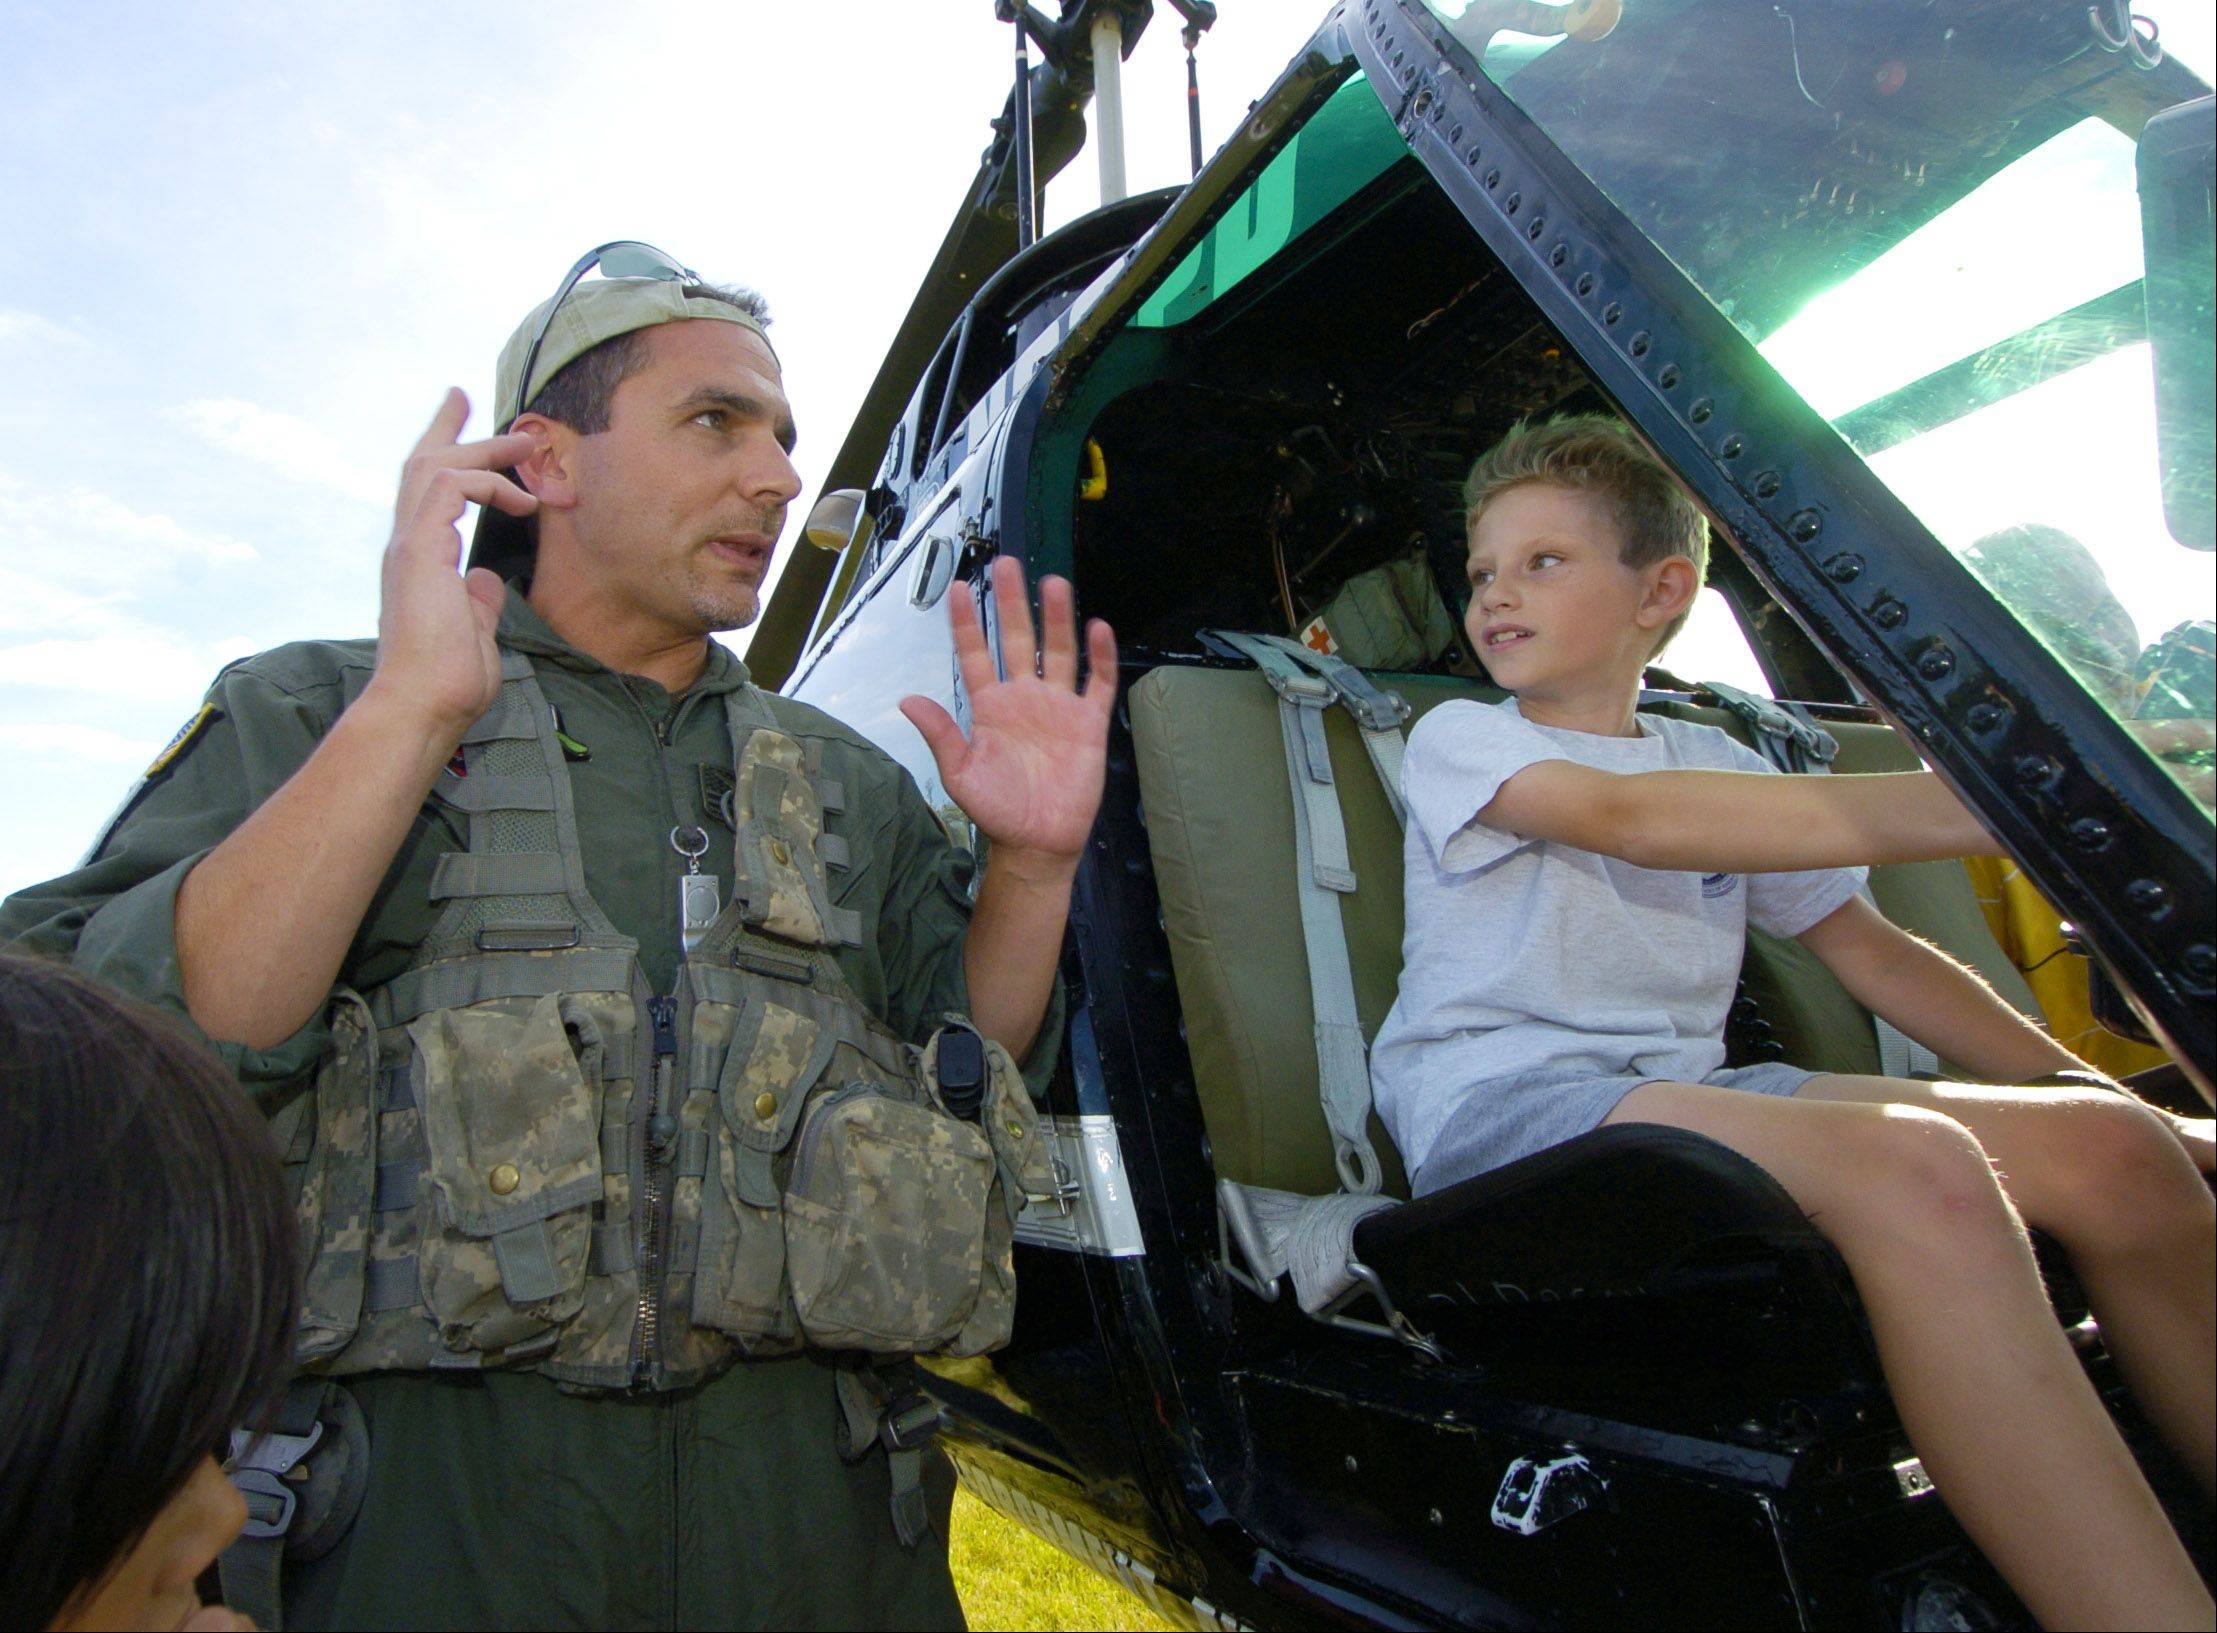 Seated in a helicopter, Timothy Knoop, 8, of Hanover Park talks with Dan O'Shea, an Elgin Police Department sergeant and a senior tactical flight officer with the Law Enforcement Aviation Coalition during the Hanover Park Police Department annual COPS Day picnic at East Harbor Park Wednesday.